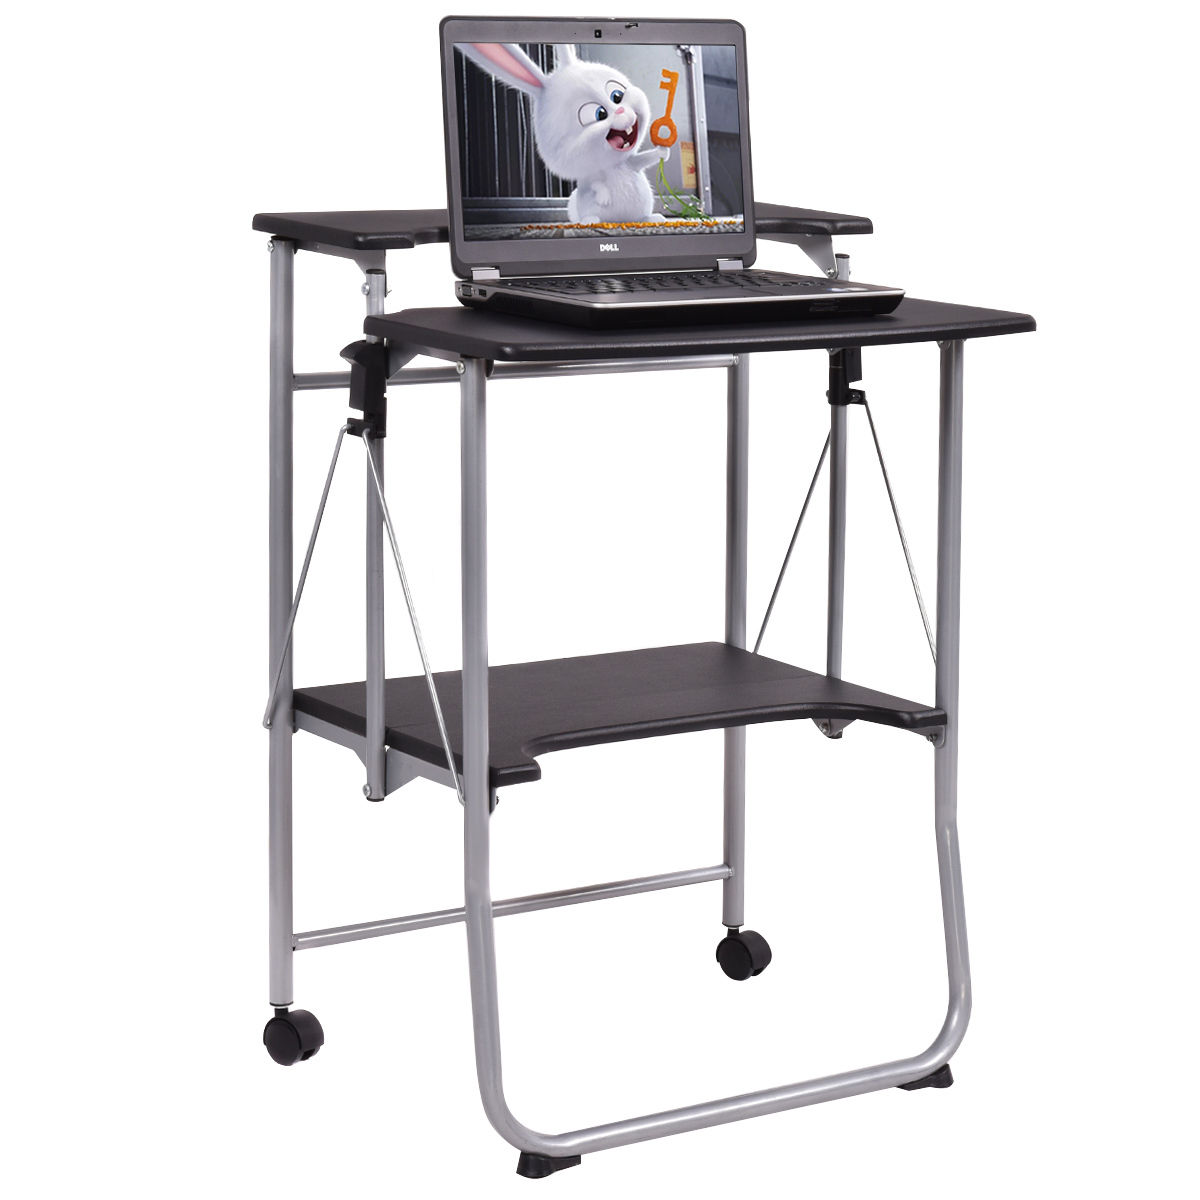 Costway Folding Computer Desk Laptop PC Table Workstation Study